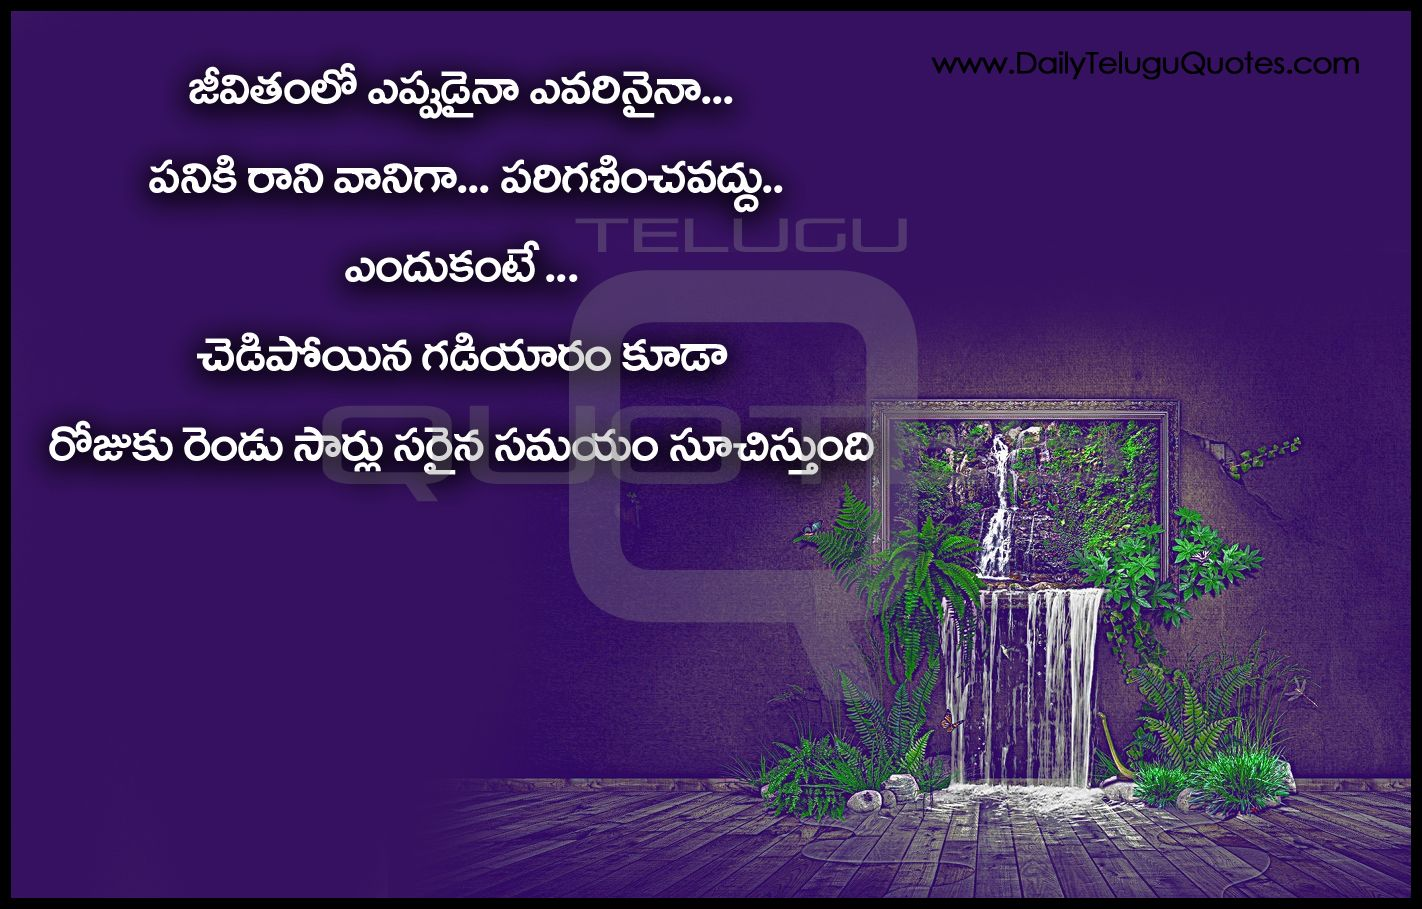 Inspirational Quotes In Telugu Live Motivational Incredible And Wonderful Nature Flow Form Wallpa Telugu Inspirational Quotes Inspirational Quotes Image Quotes